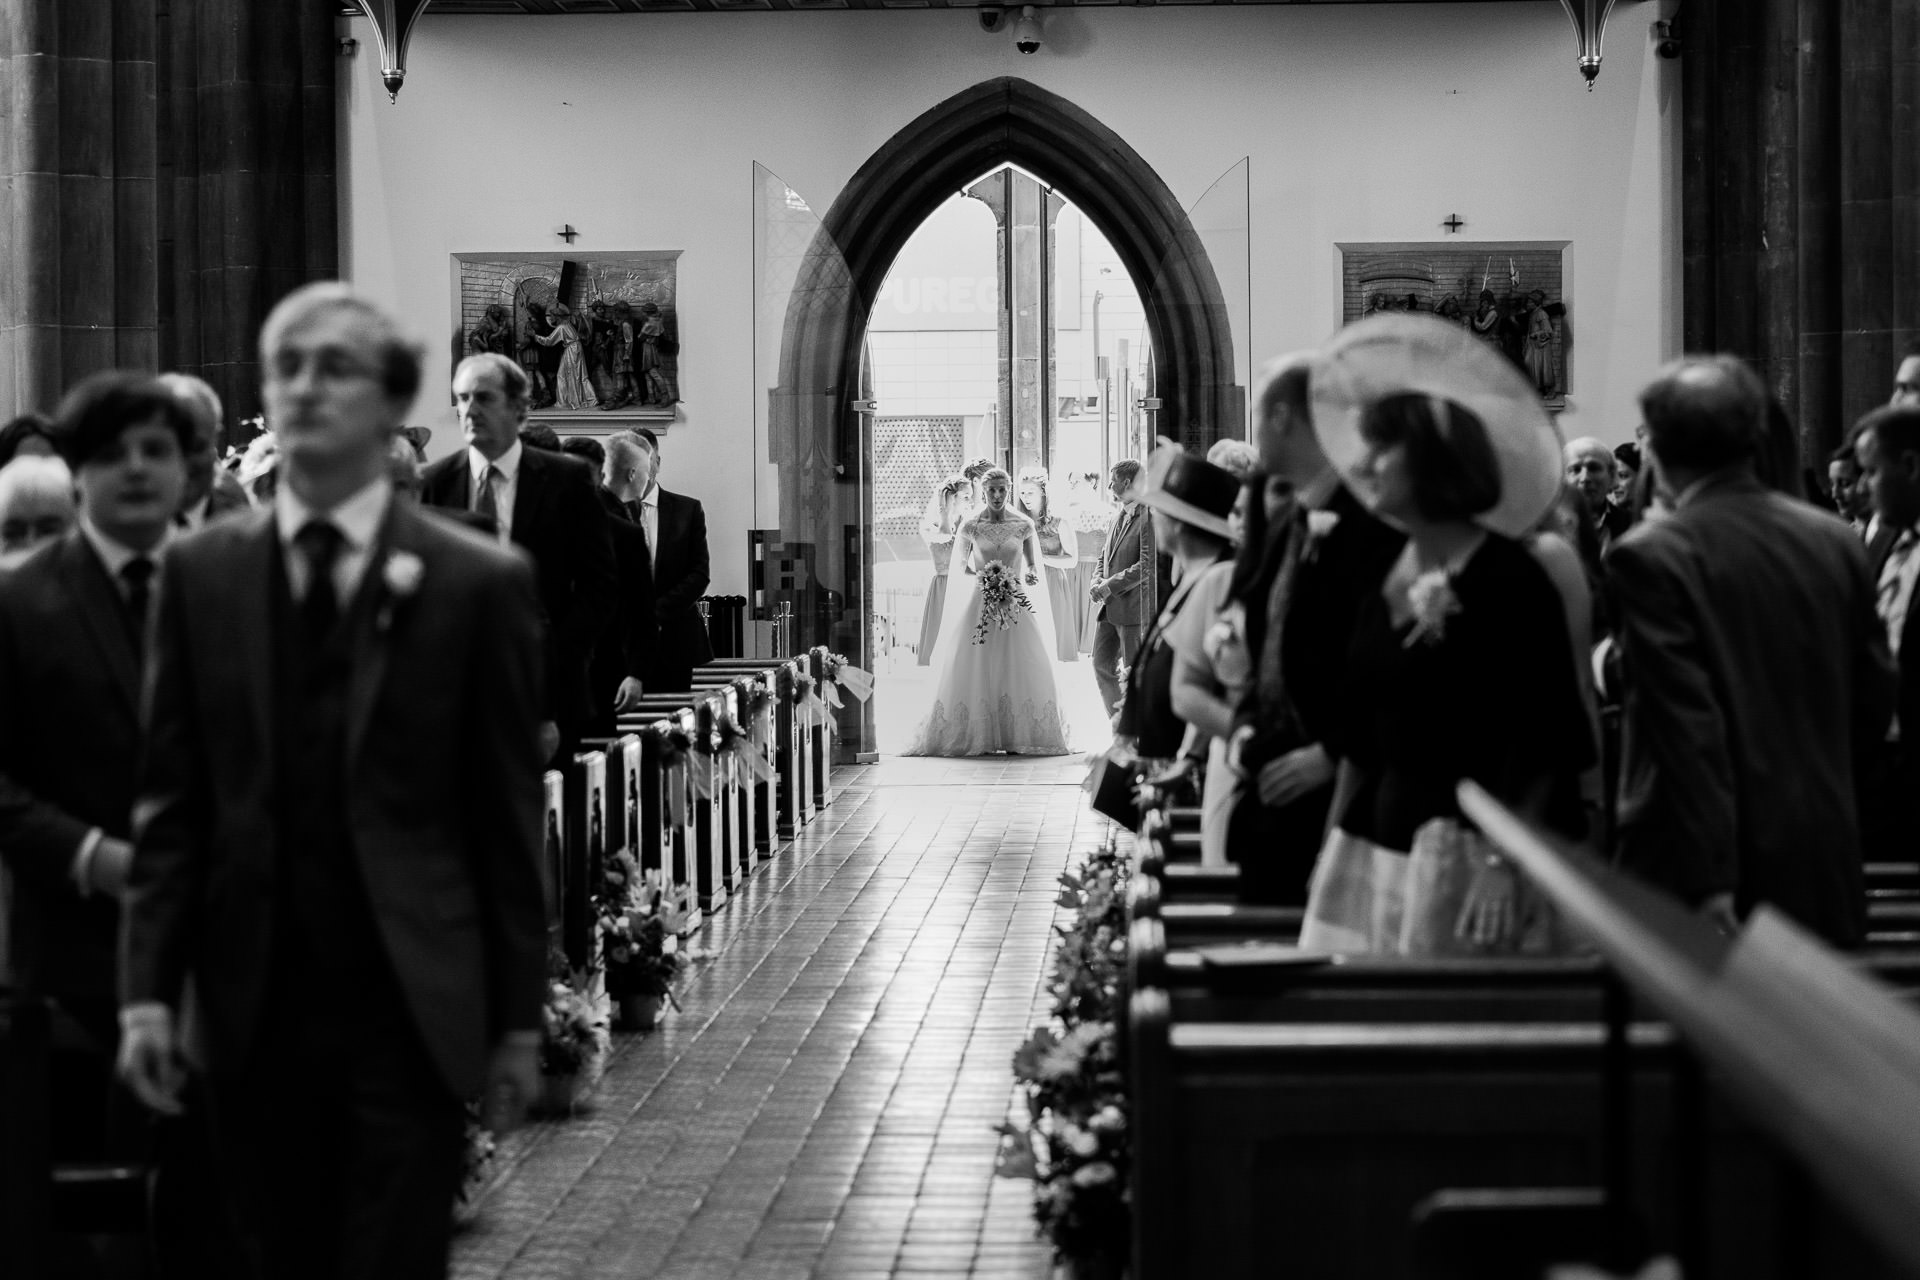 St Chads cathedral Birmingham Bride about to walk down aisle